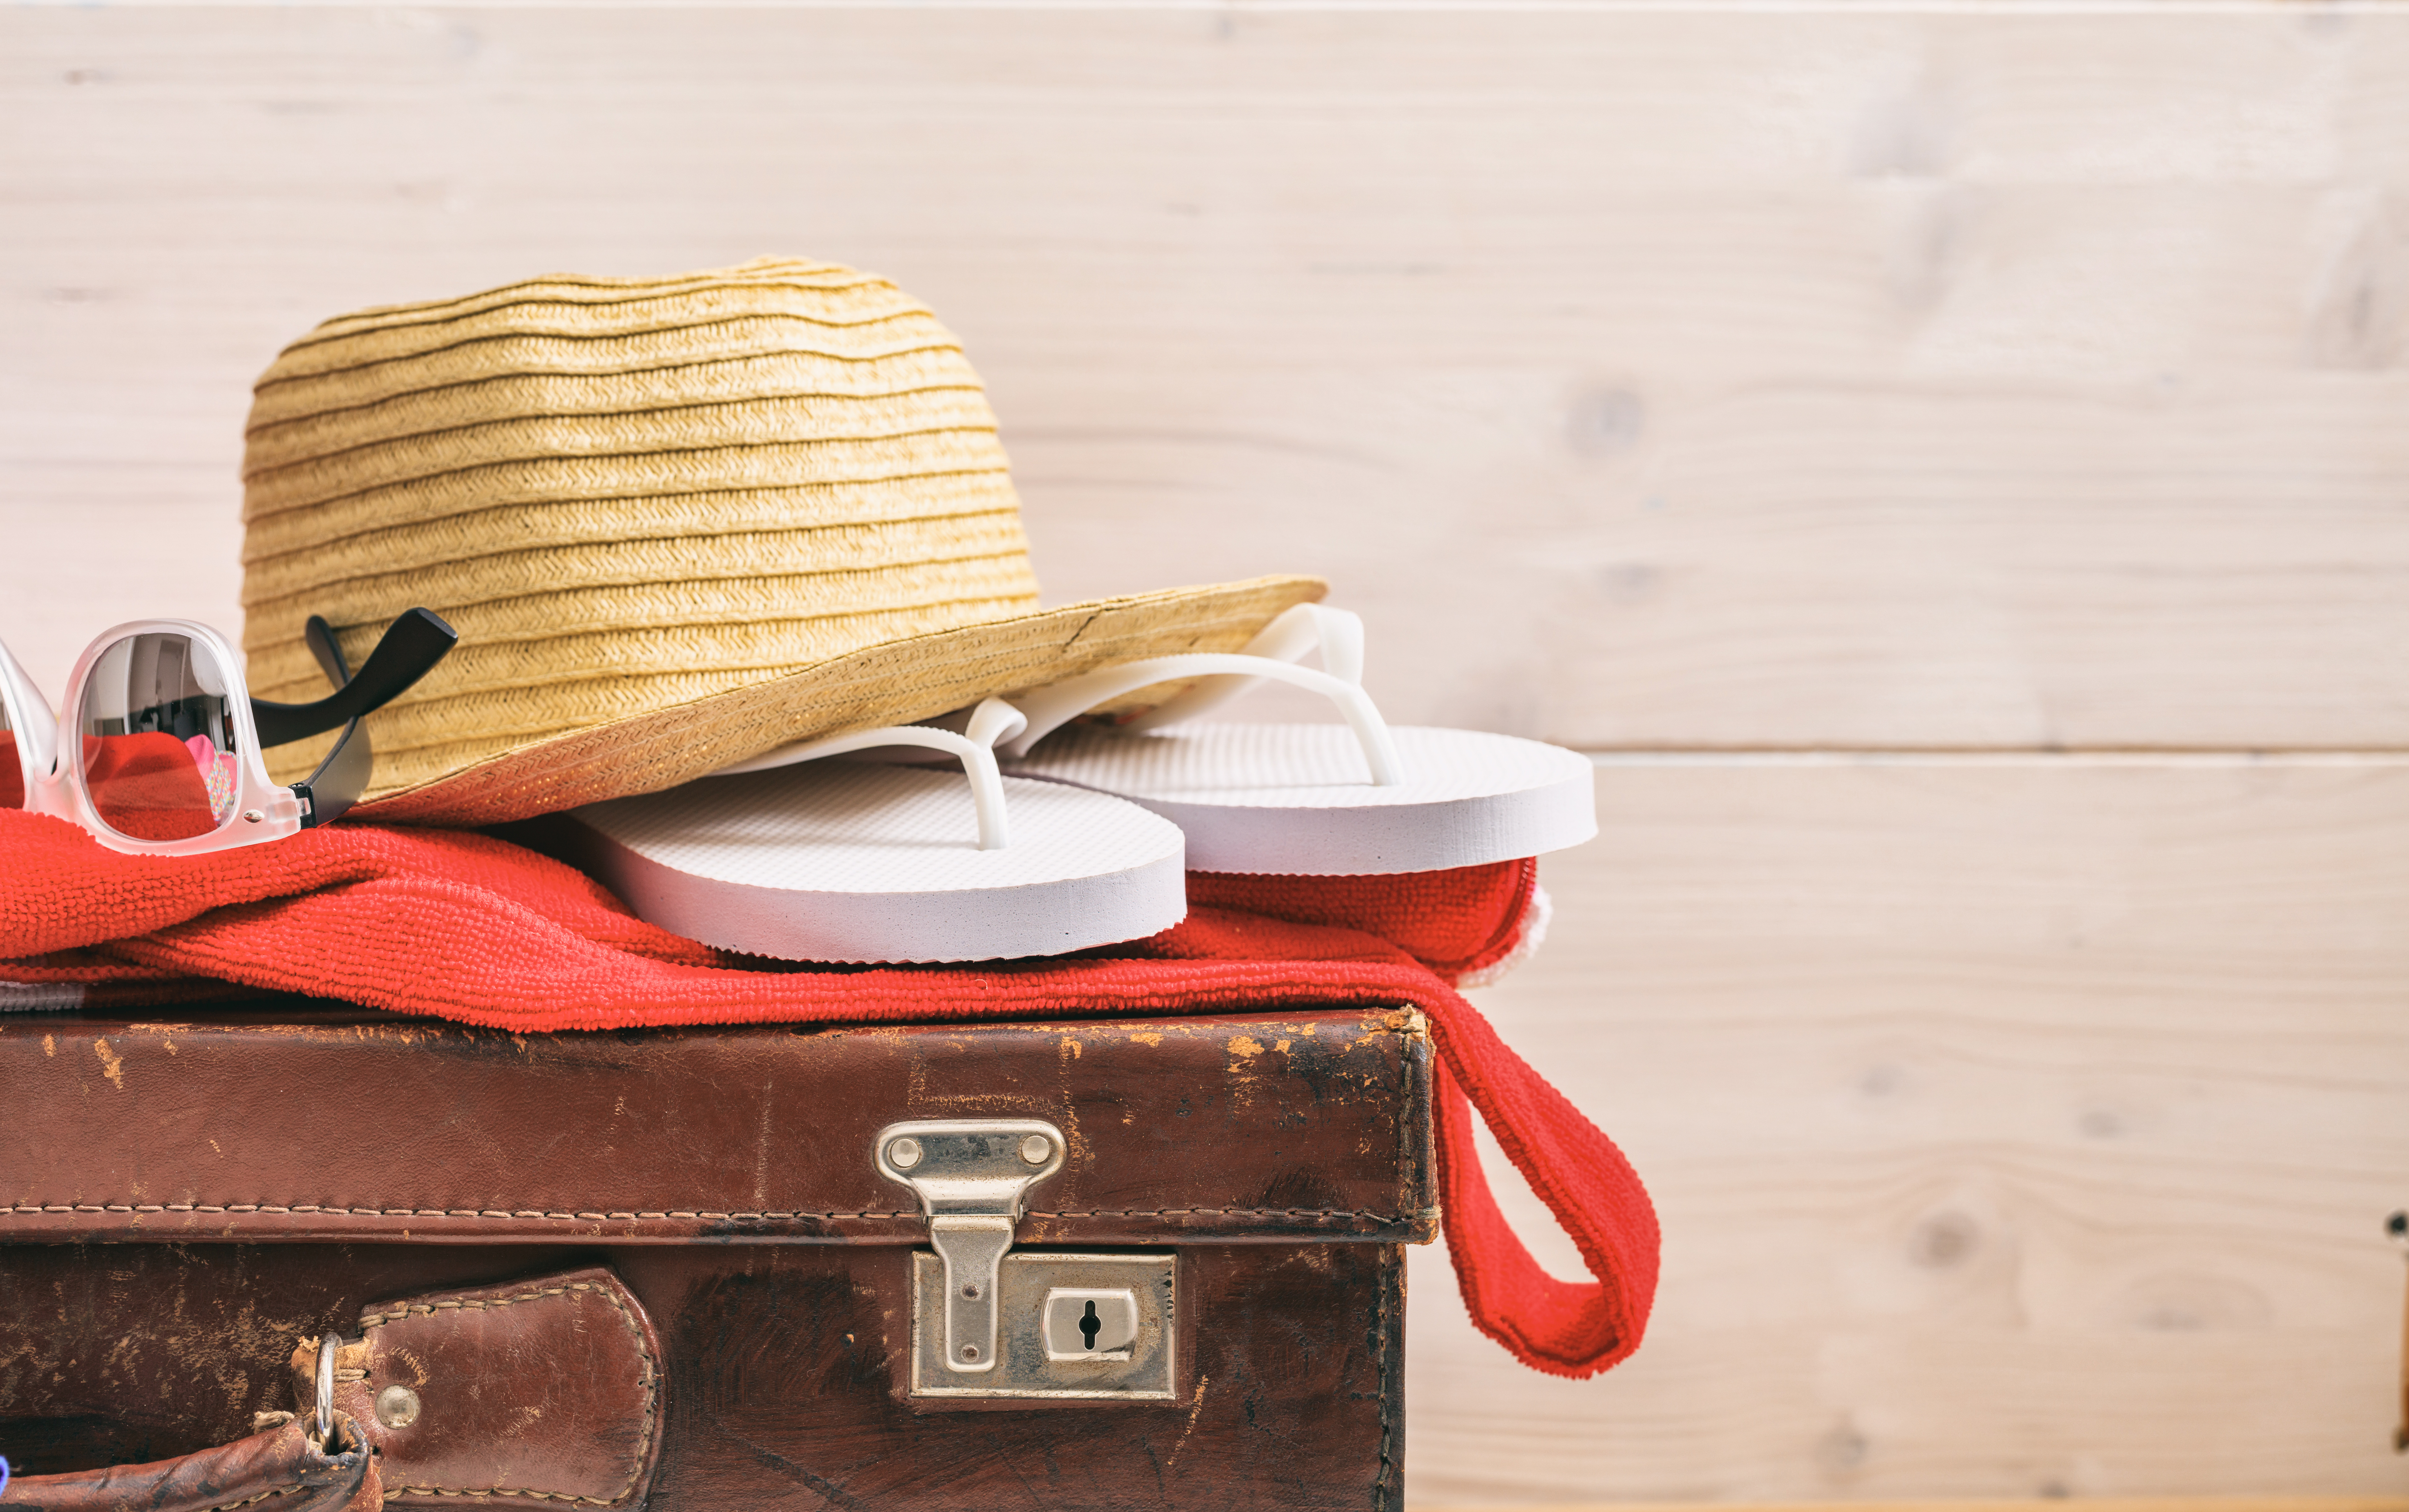 Beach accessories on an old suitcase - white wooden background - copy space